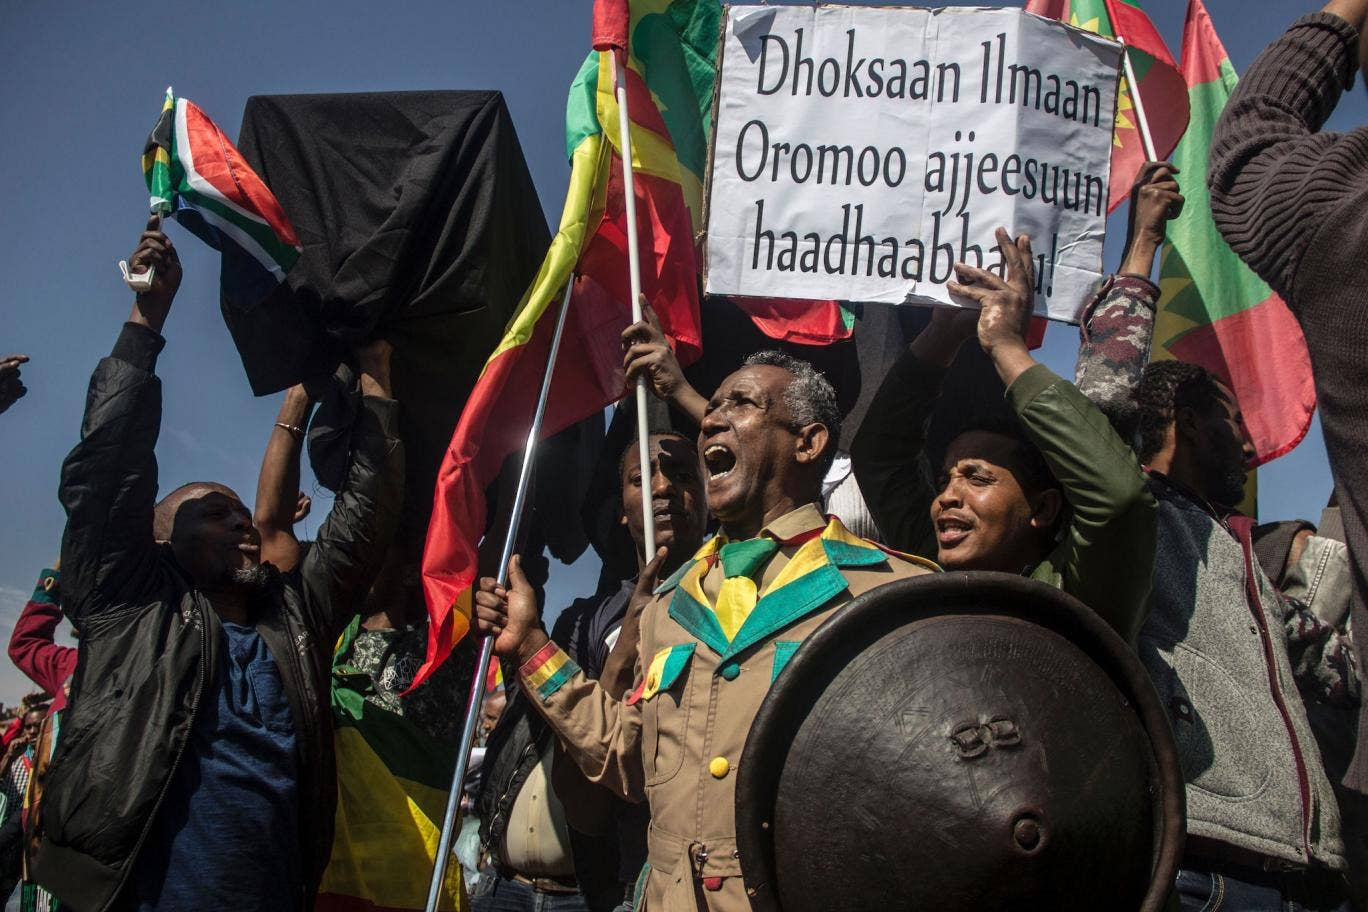 """America describes the violence in ethiopia as """"extremly serious""""."""